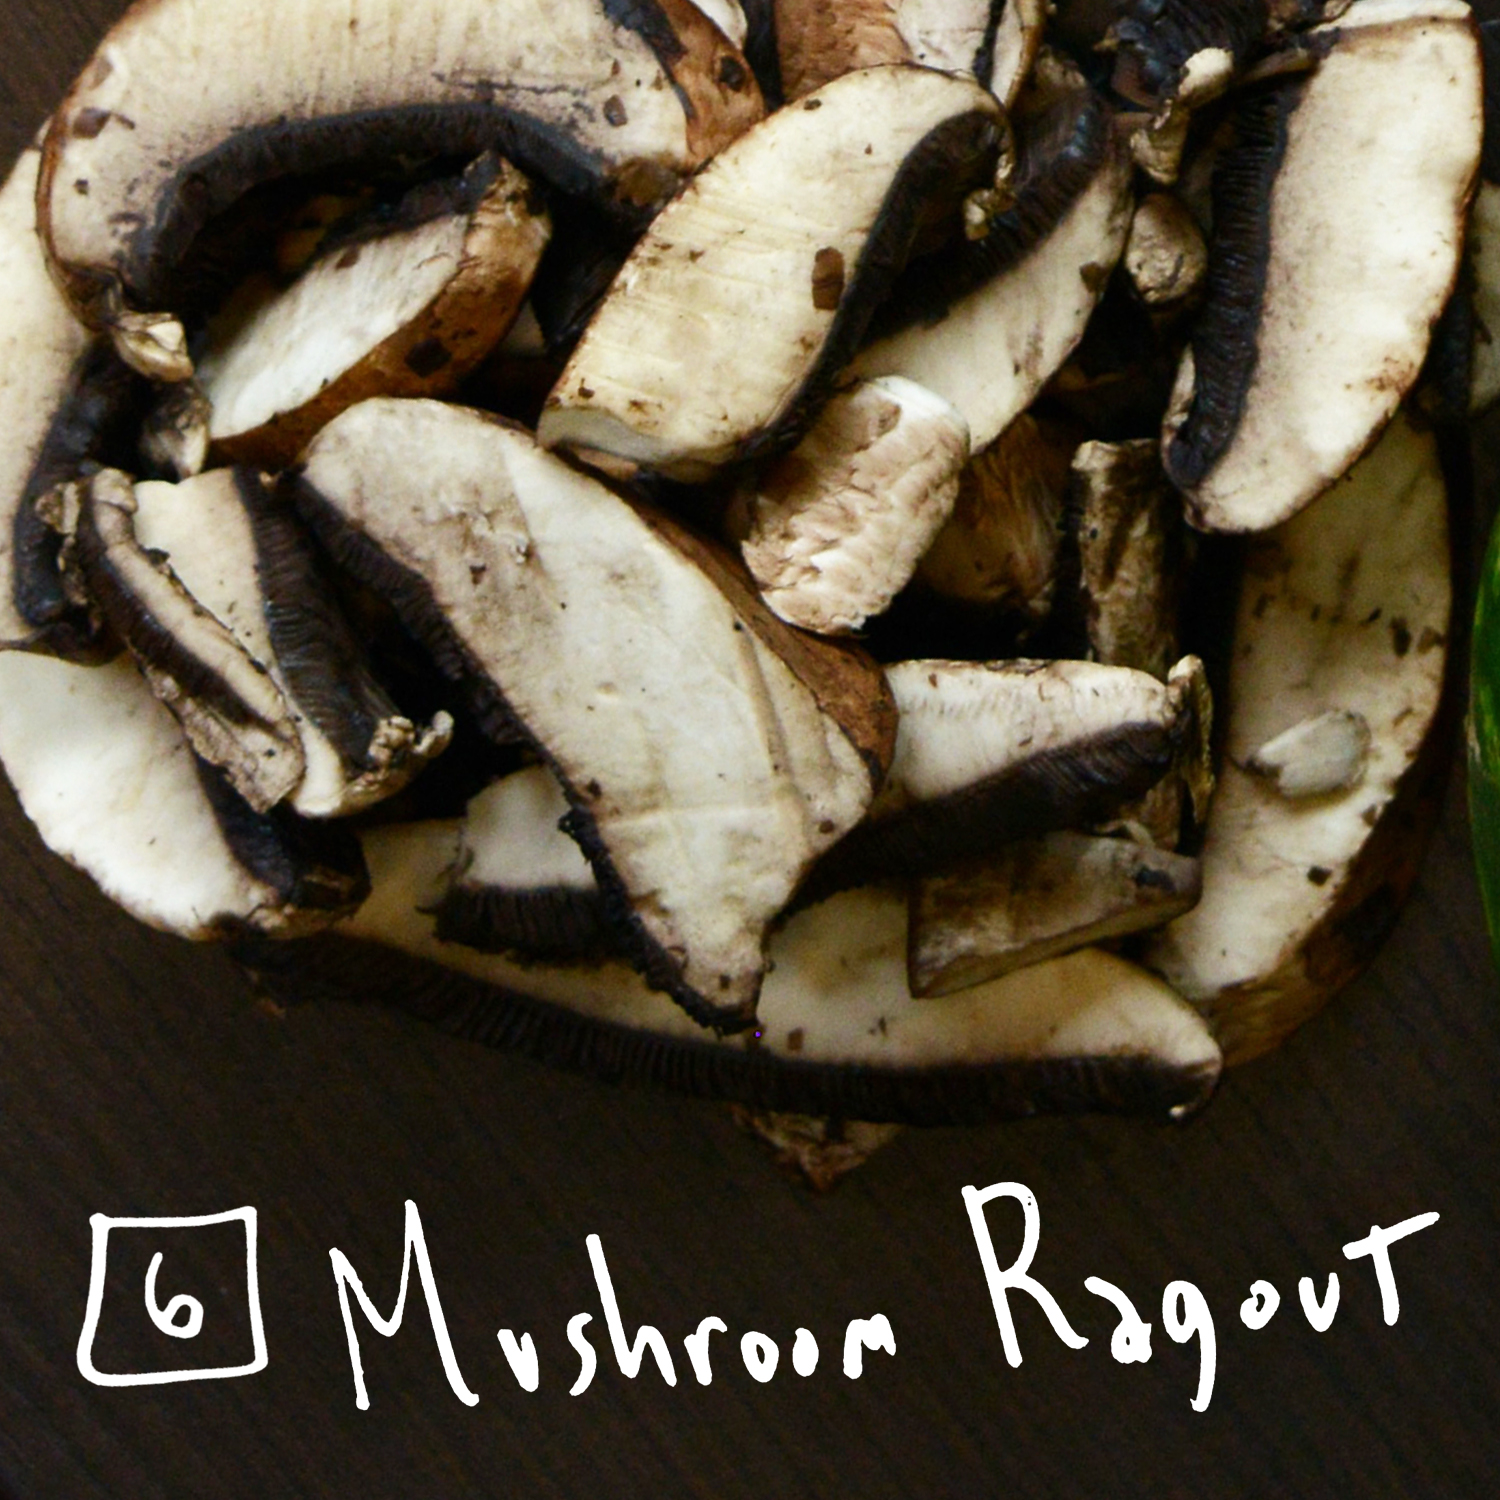 Nothing better than a dish that keeps on giving. Eat these mushrooms on their own, or as an addition to polenta, pasta, risotto or an omelette - the possibilities are endless. - Find the recipe at: NY Times Cooking